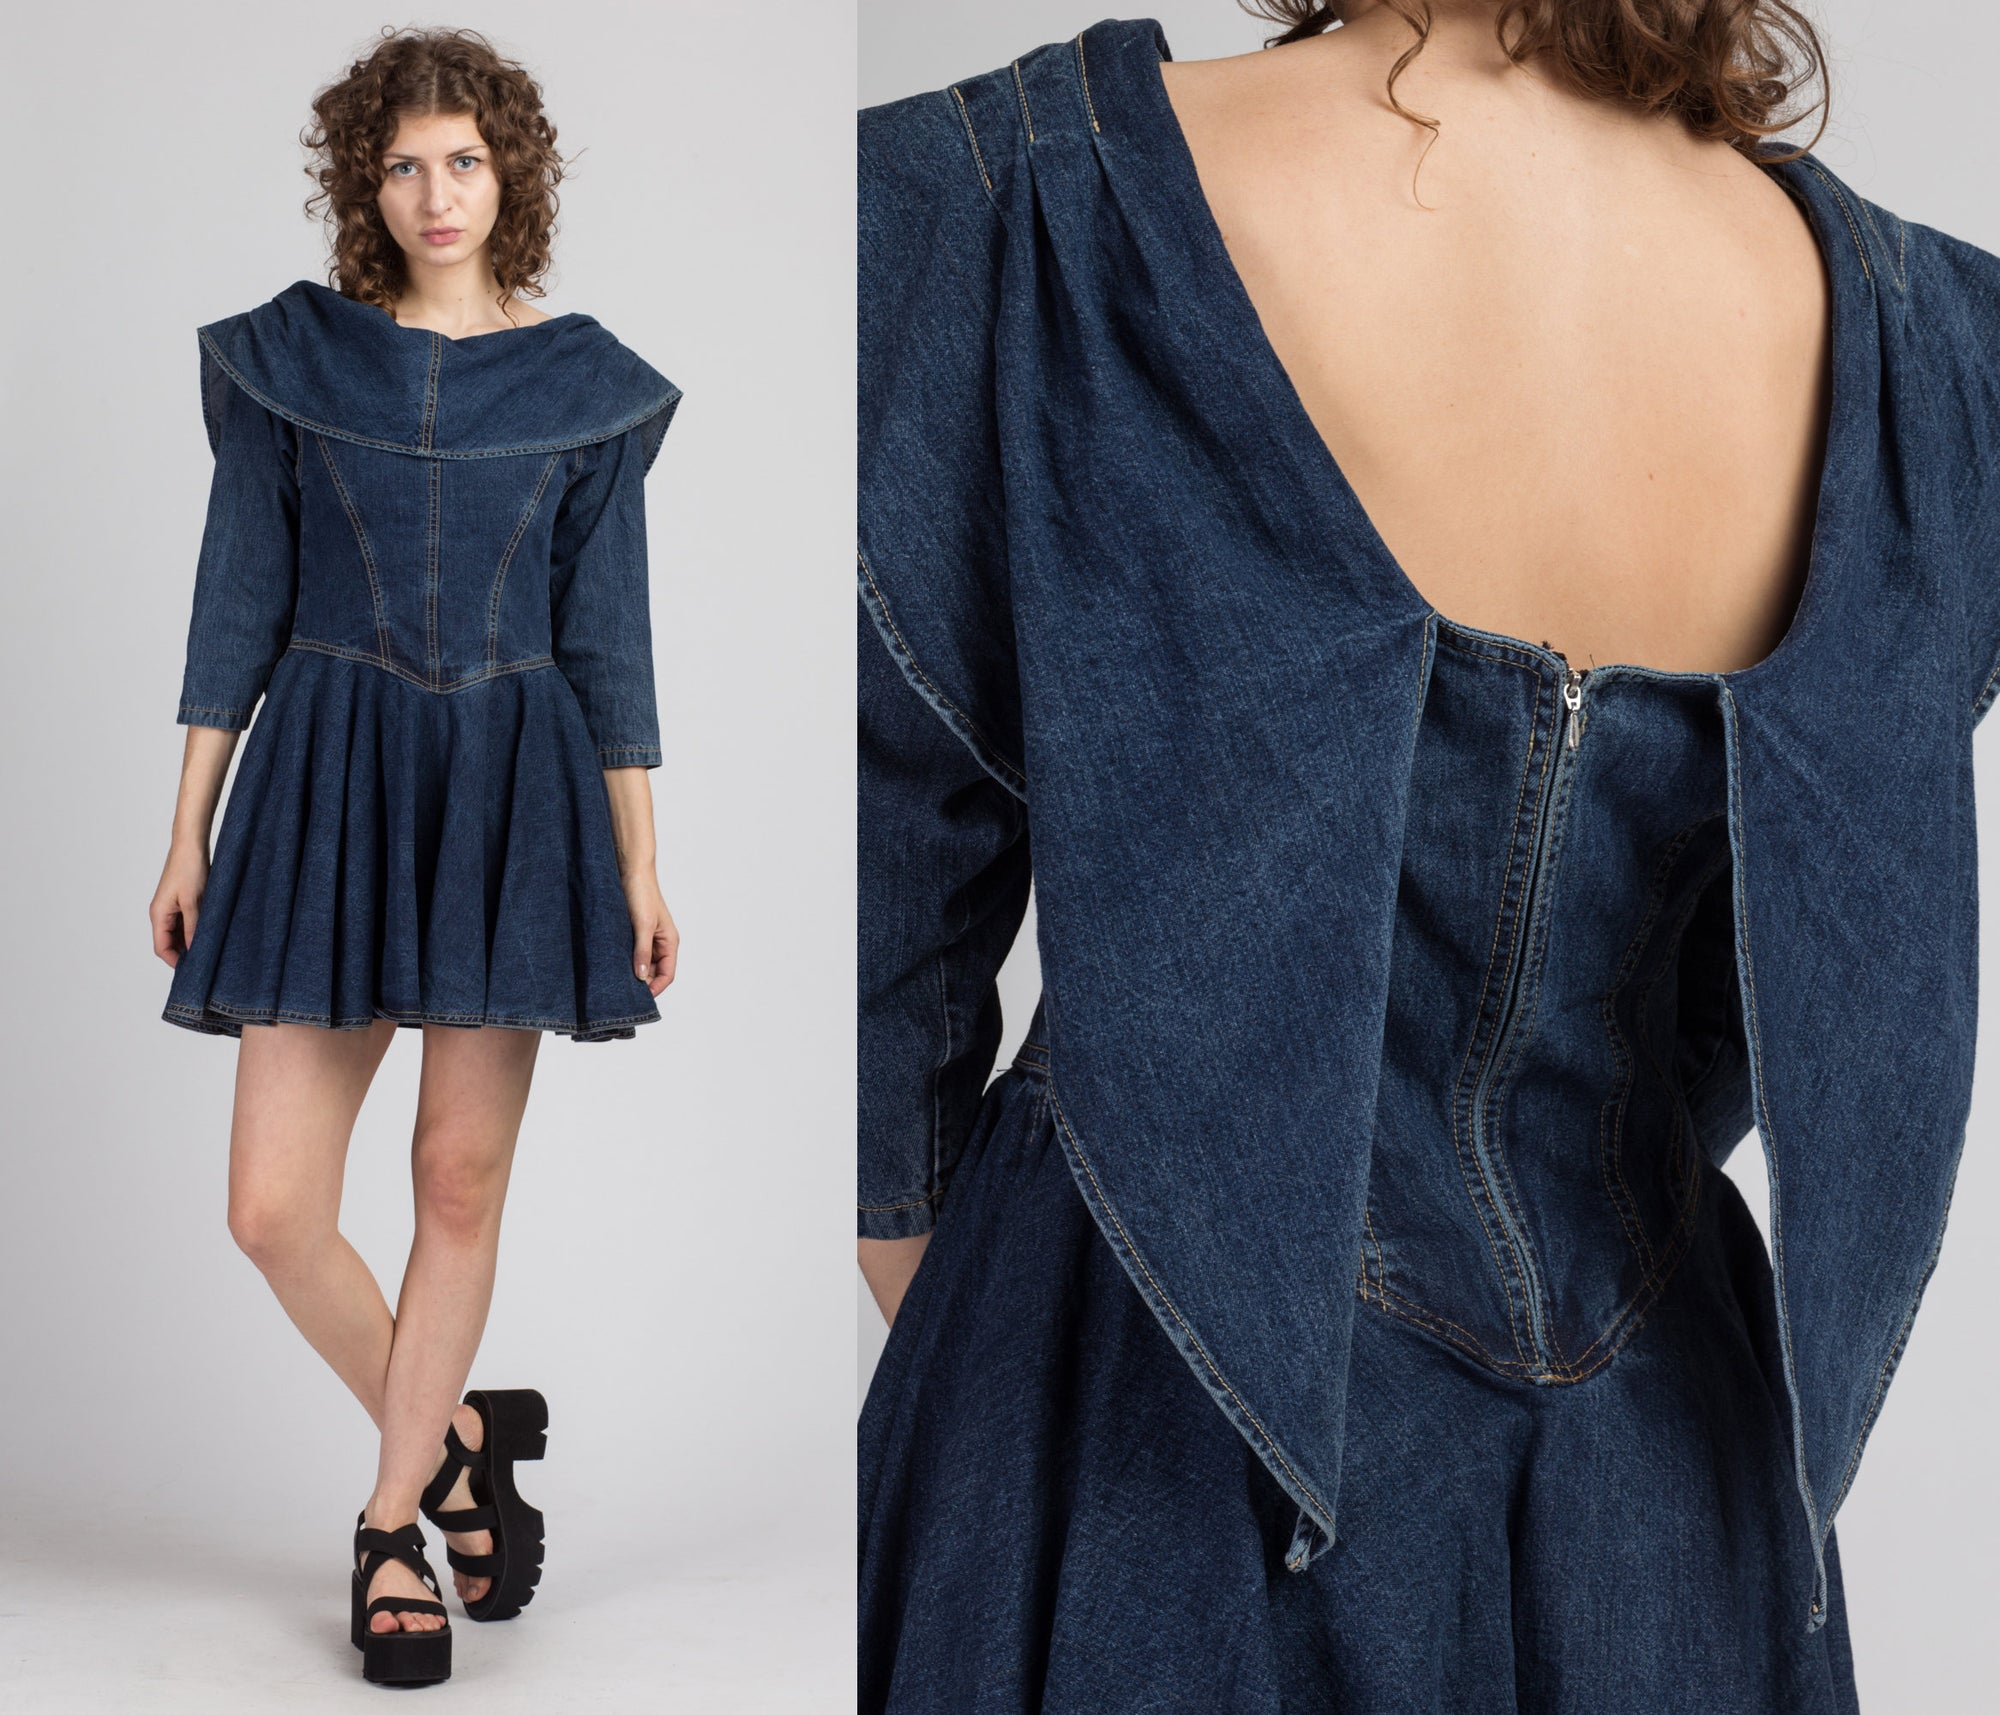 90s Denim Sailor Collar Mini Dress - Medium